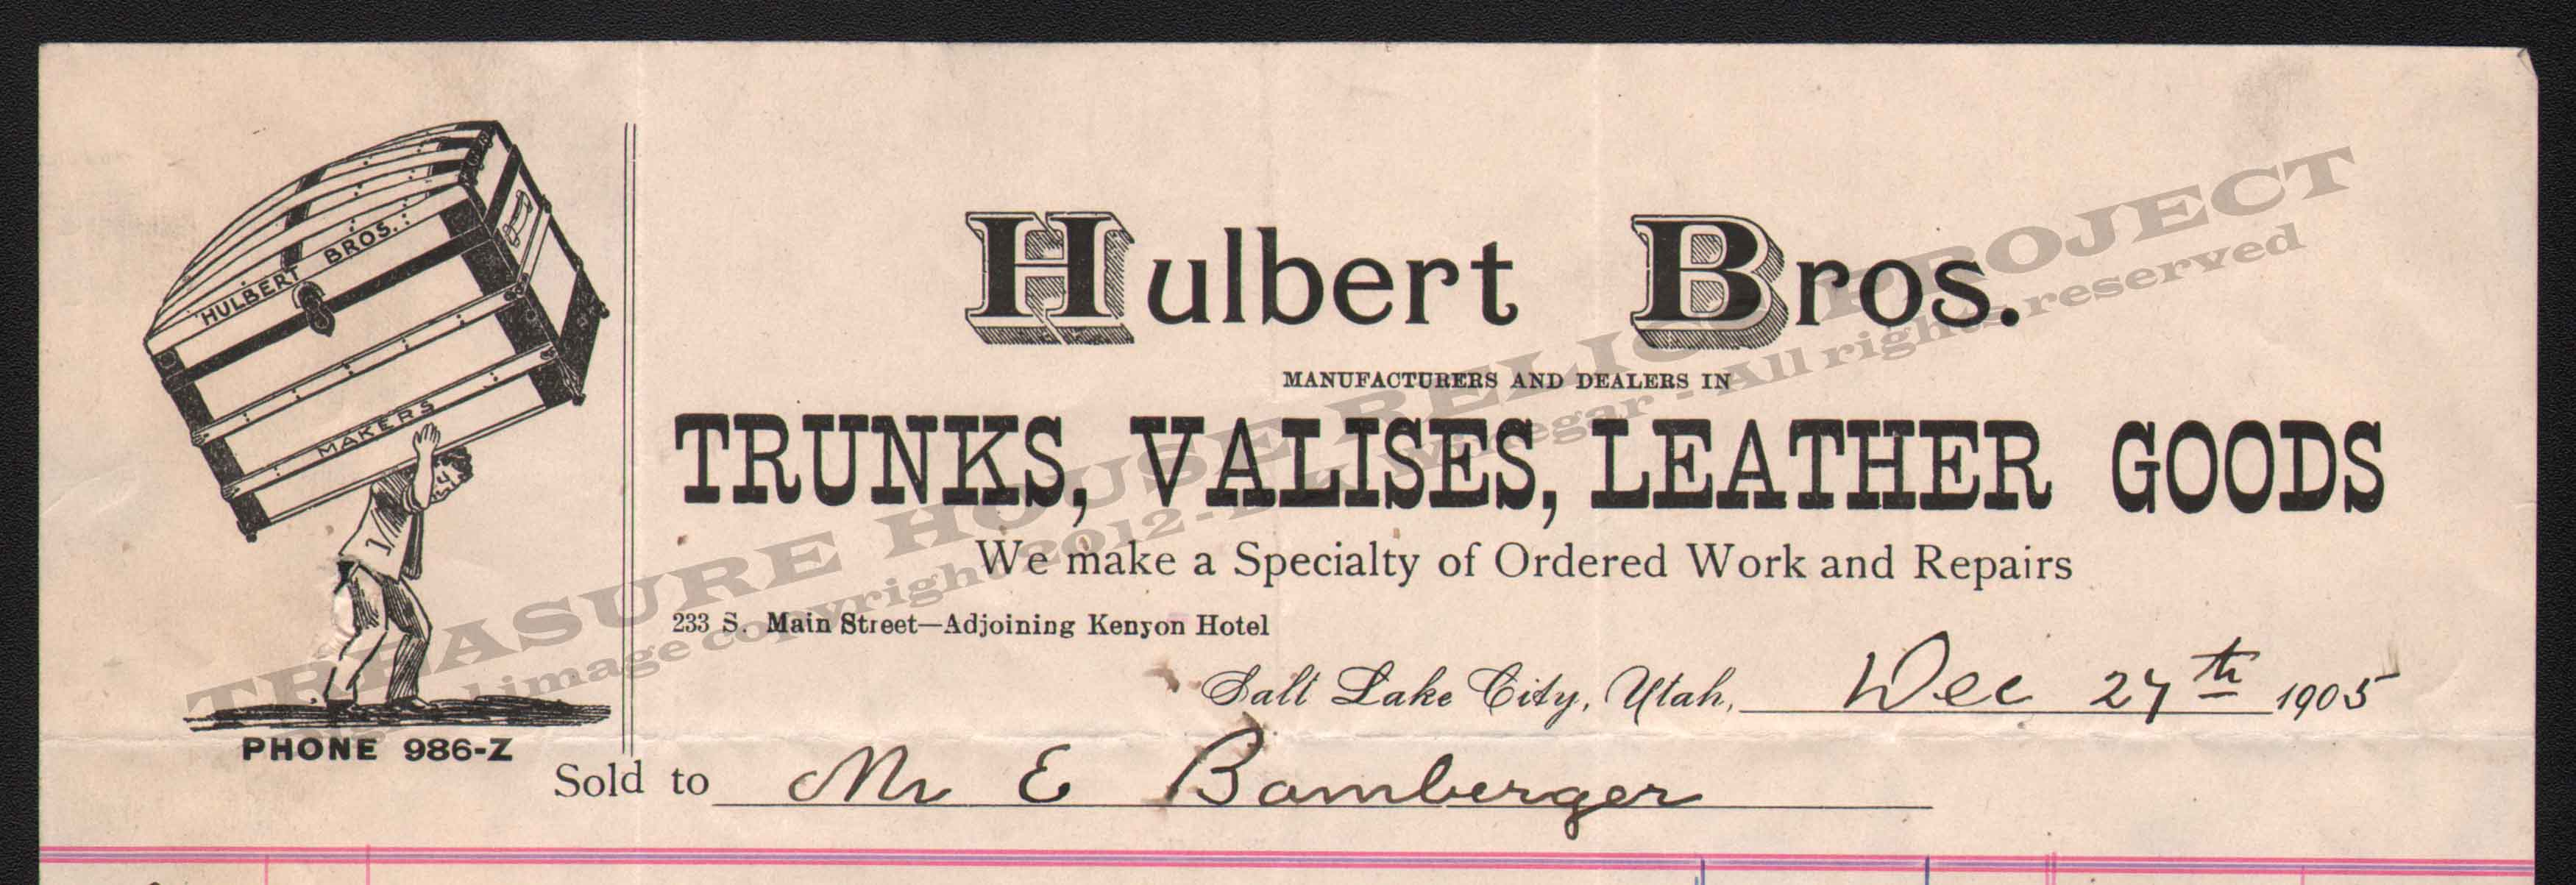 LETTERHEAD_ELIAS_MORRIS___SONS_CO_9_18_1907_400_crop_emboss.jpg